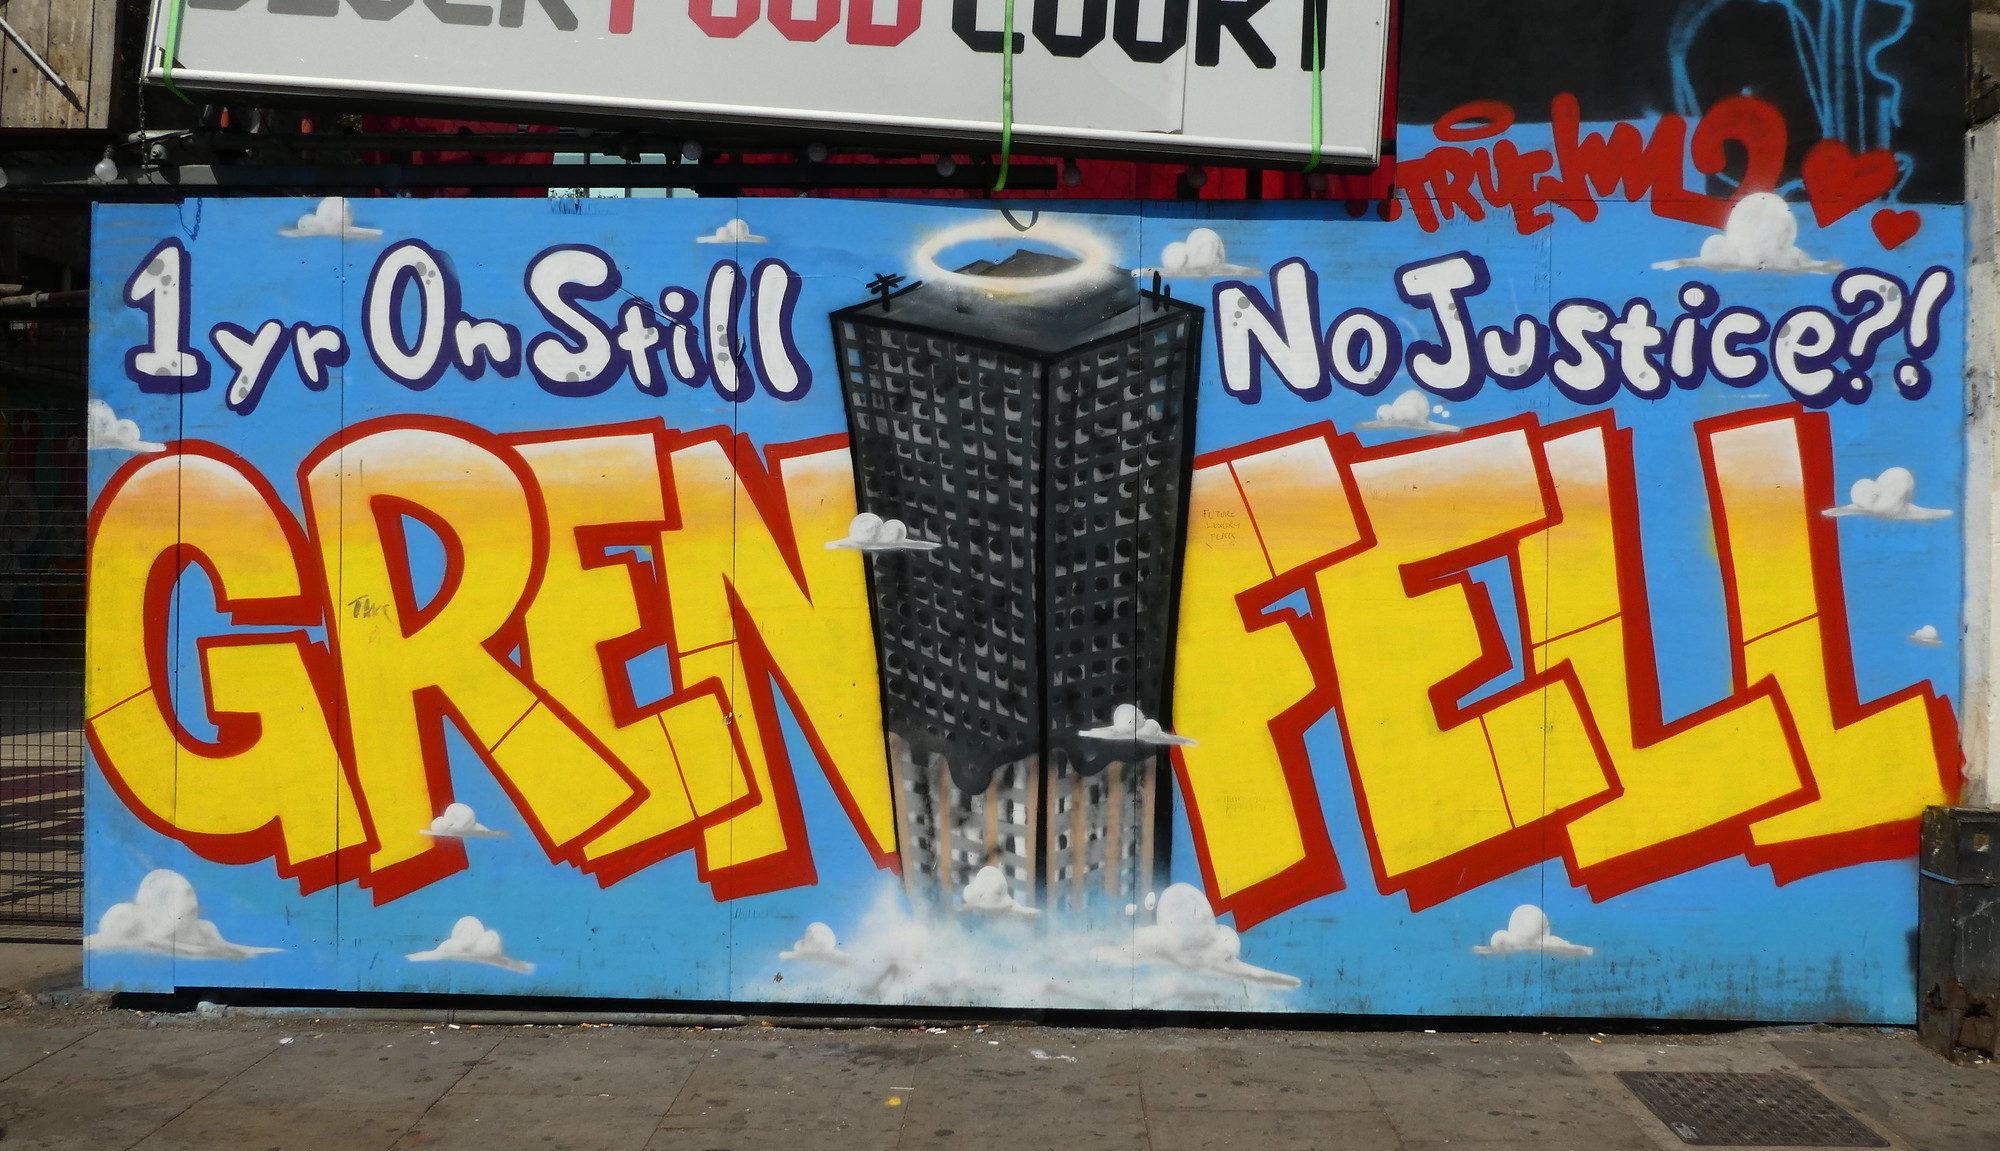 "Graffiti reads ""Grenfell - One year on still no justice?!"""